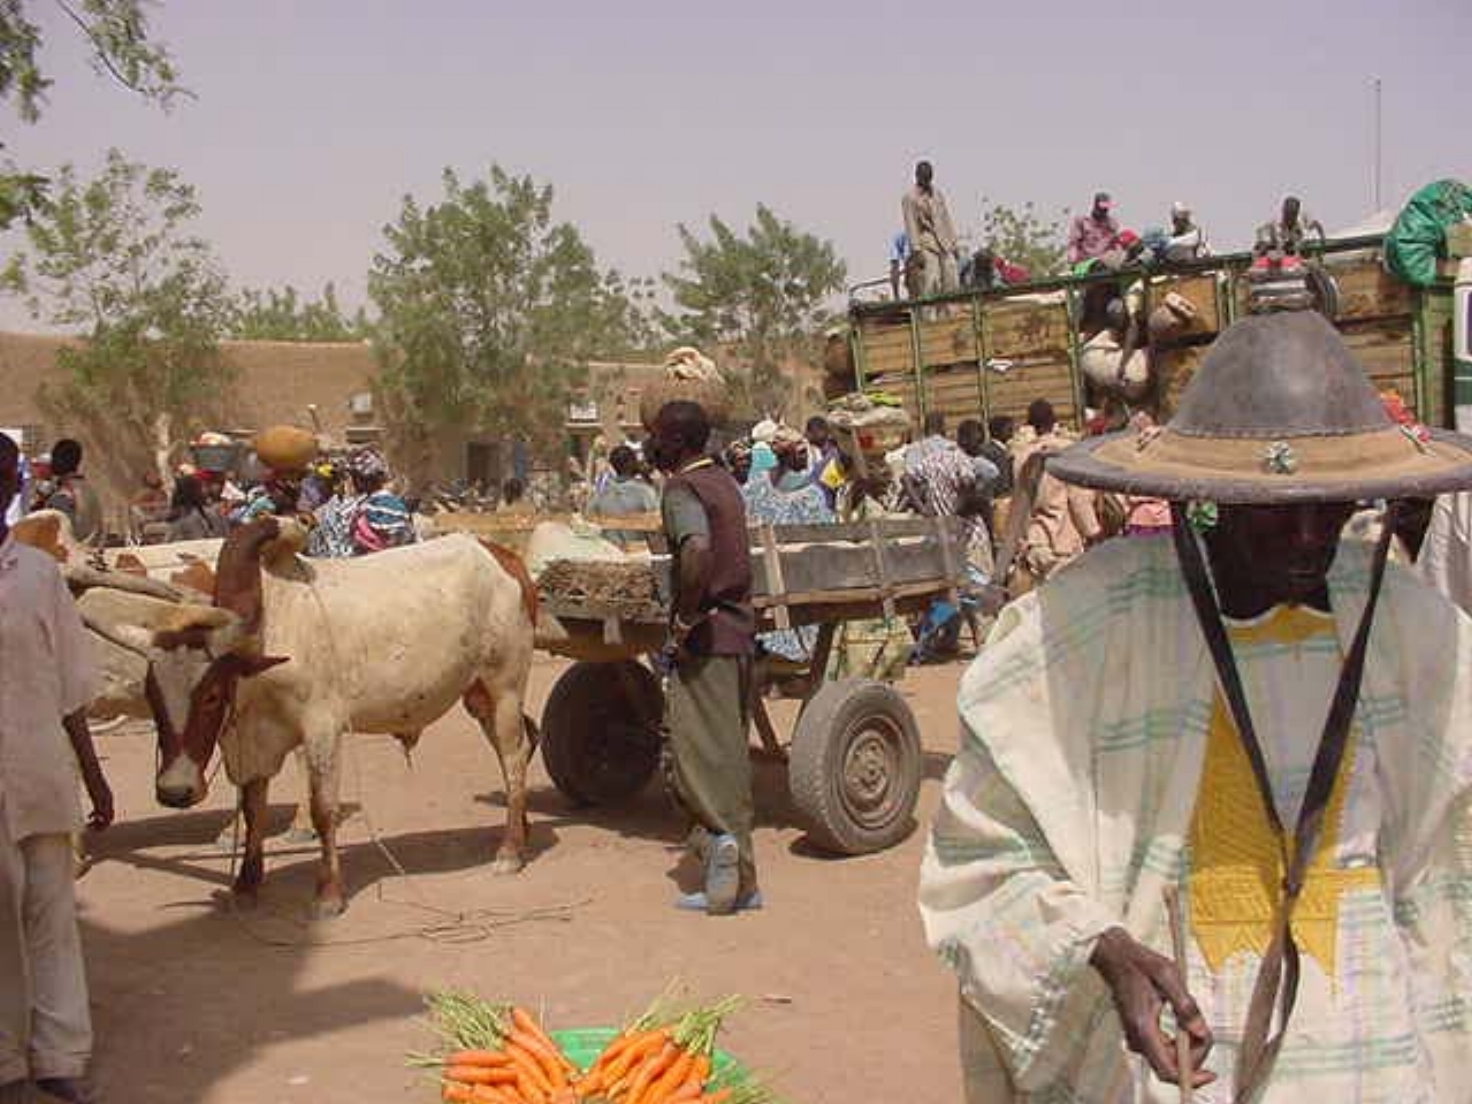 Lively streets of Djenne